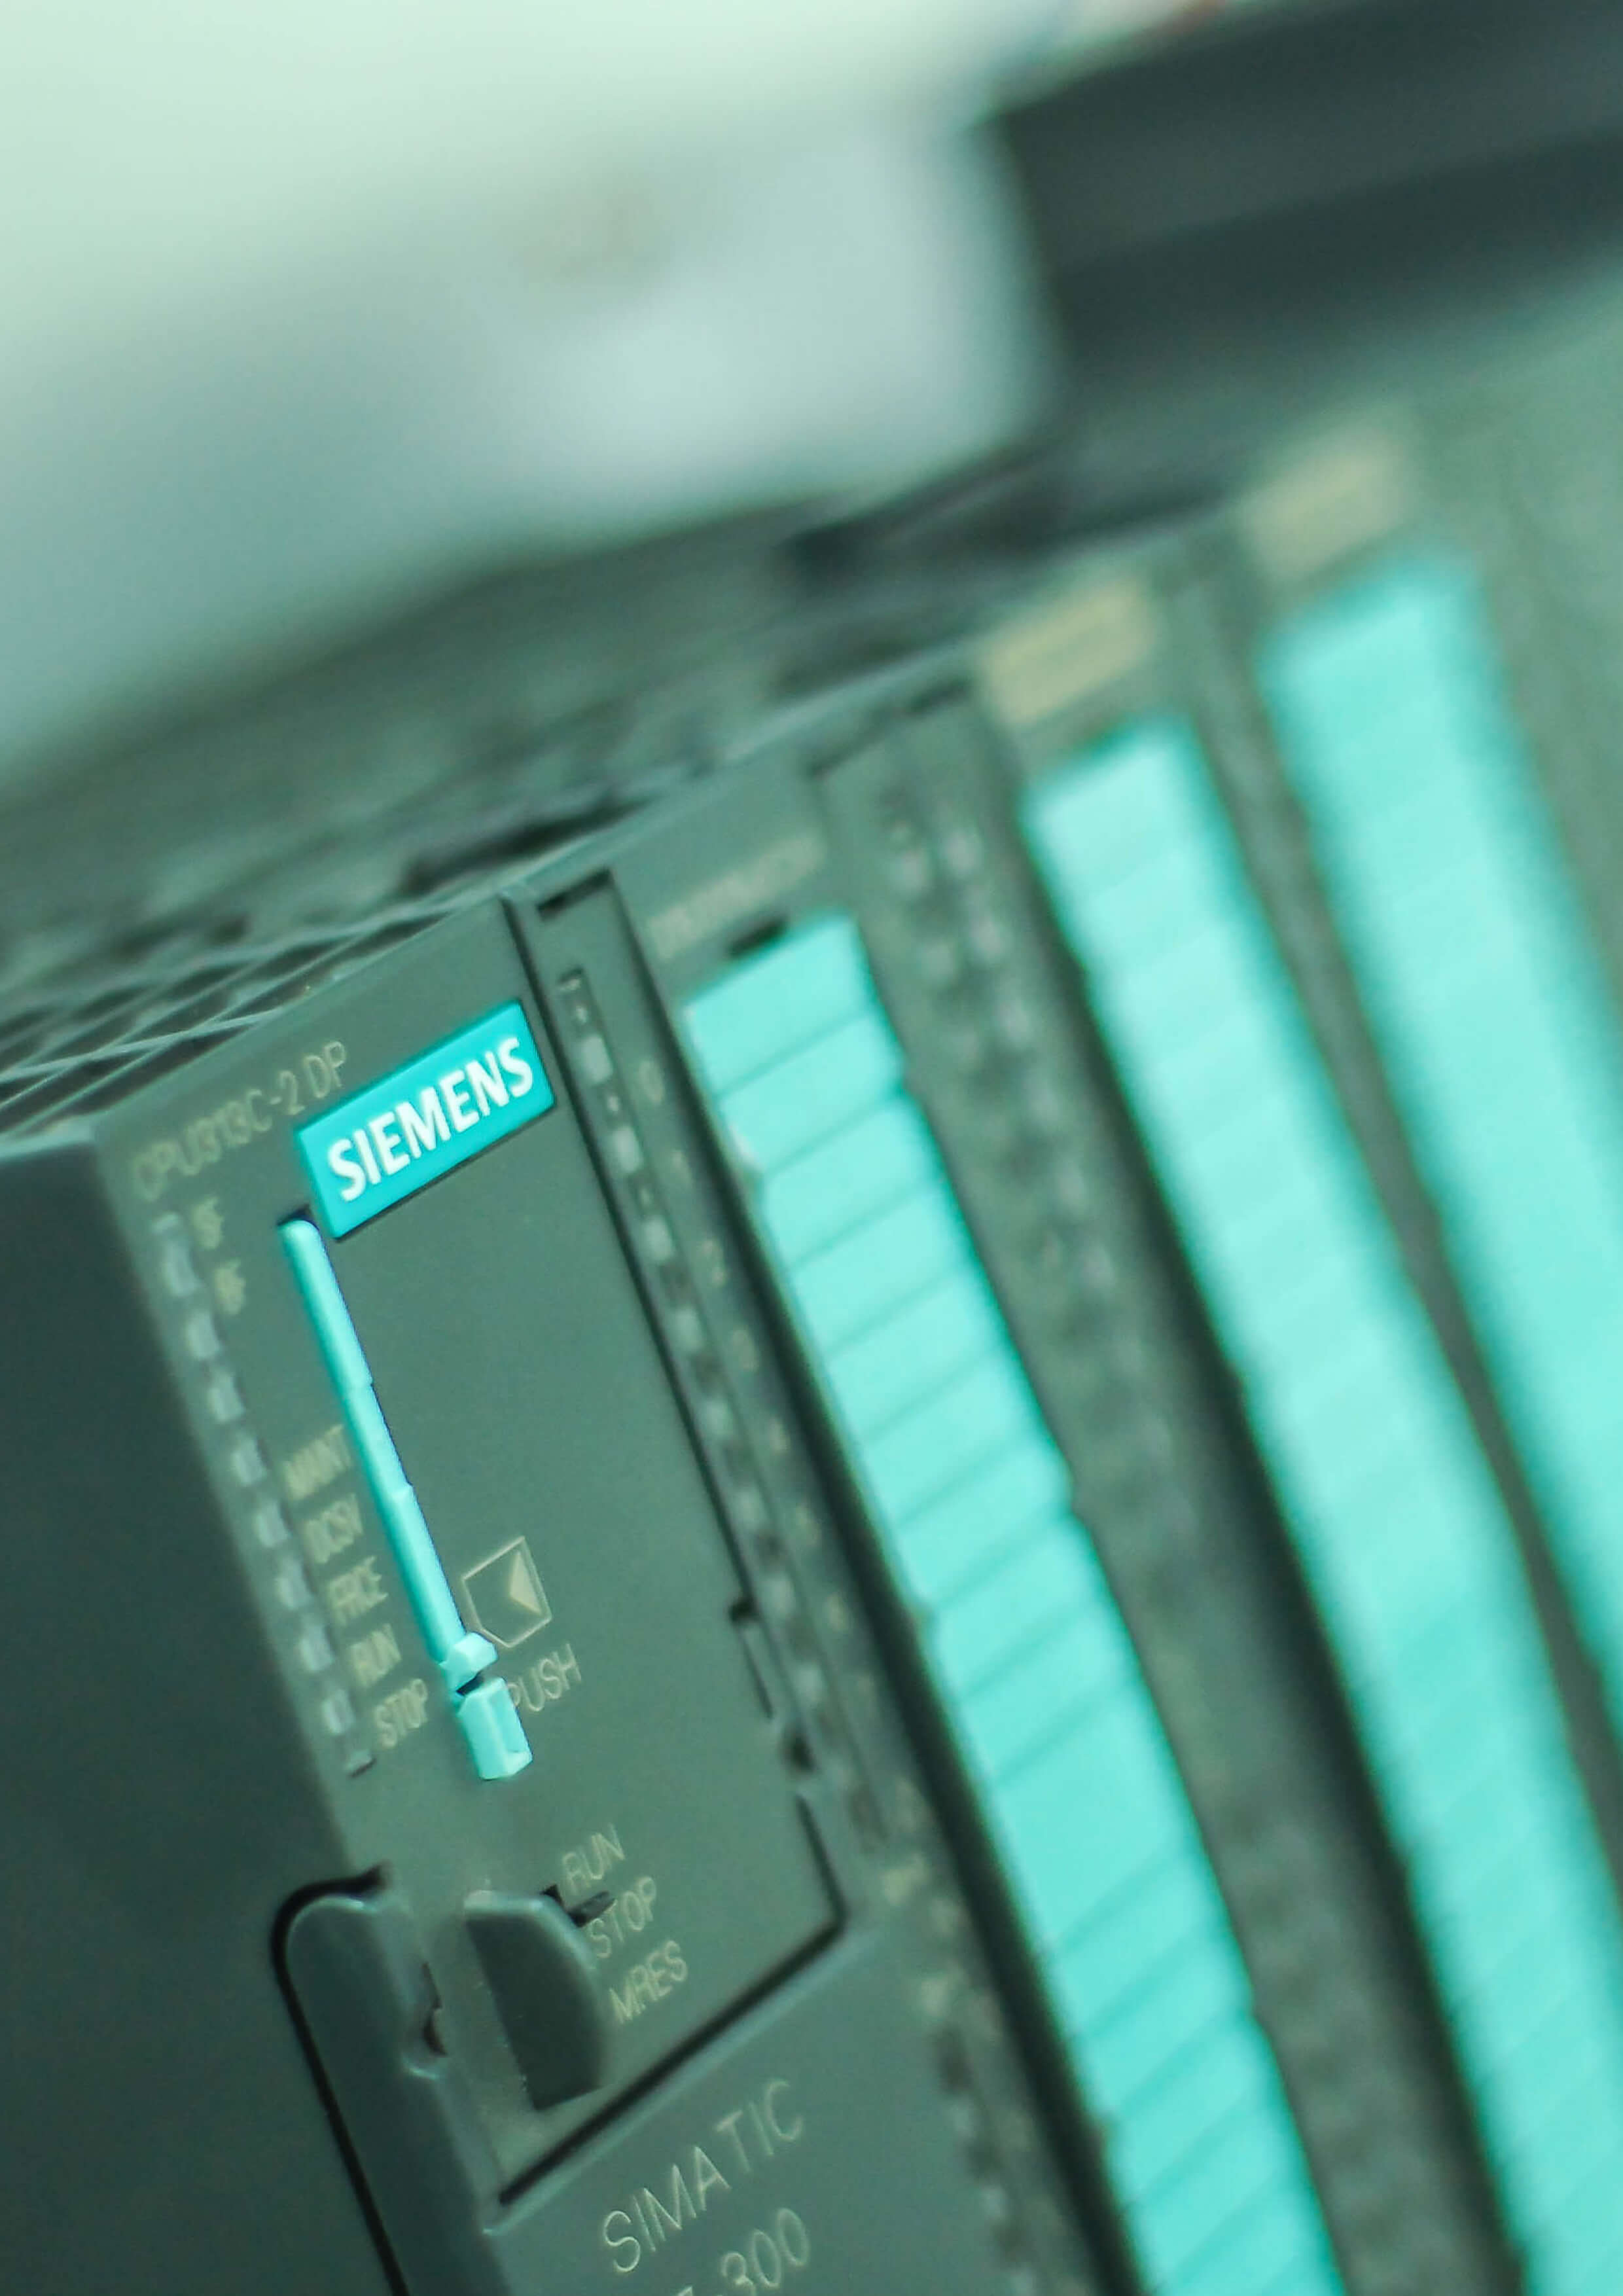 SIMATIC S7 PLC Programming—Advanced Level based on S7-300